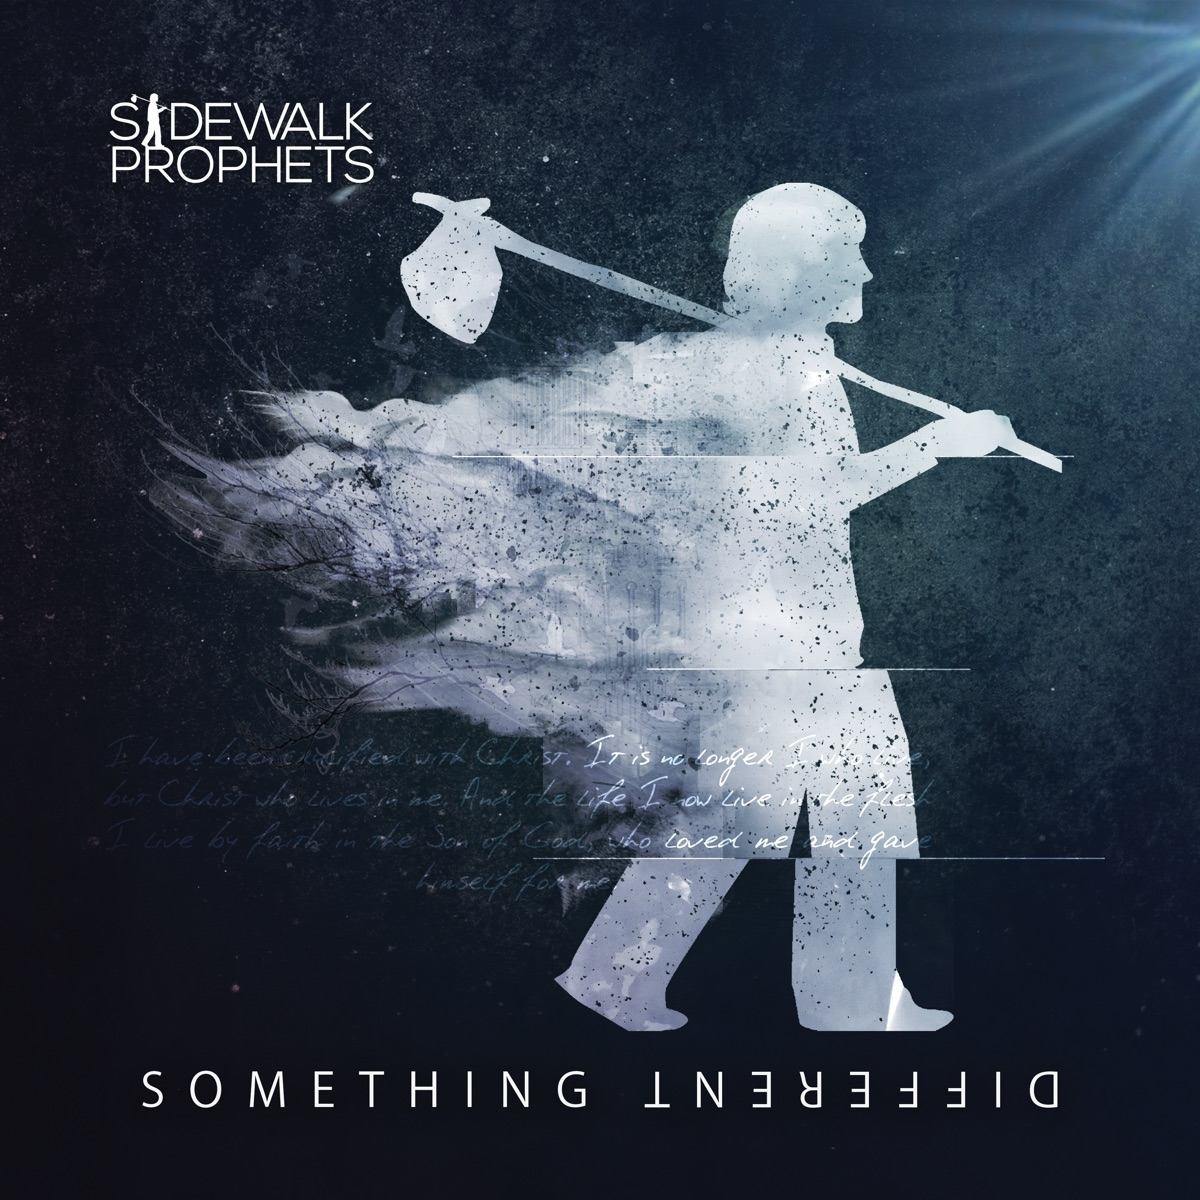 Something Different Deluxe Version Sidewalk Prophets CD cover